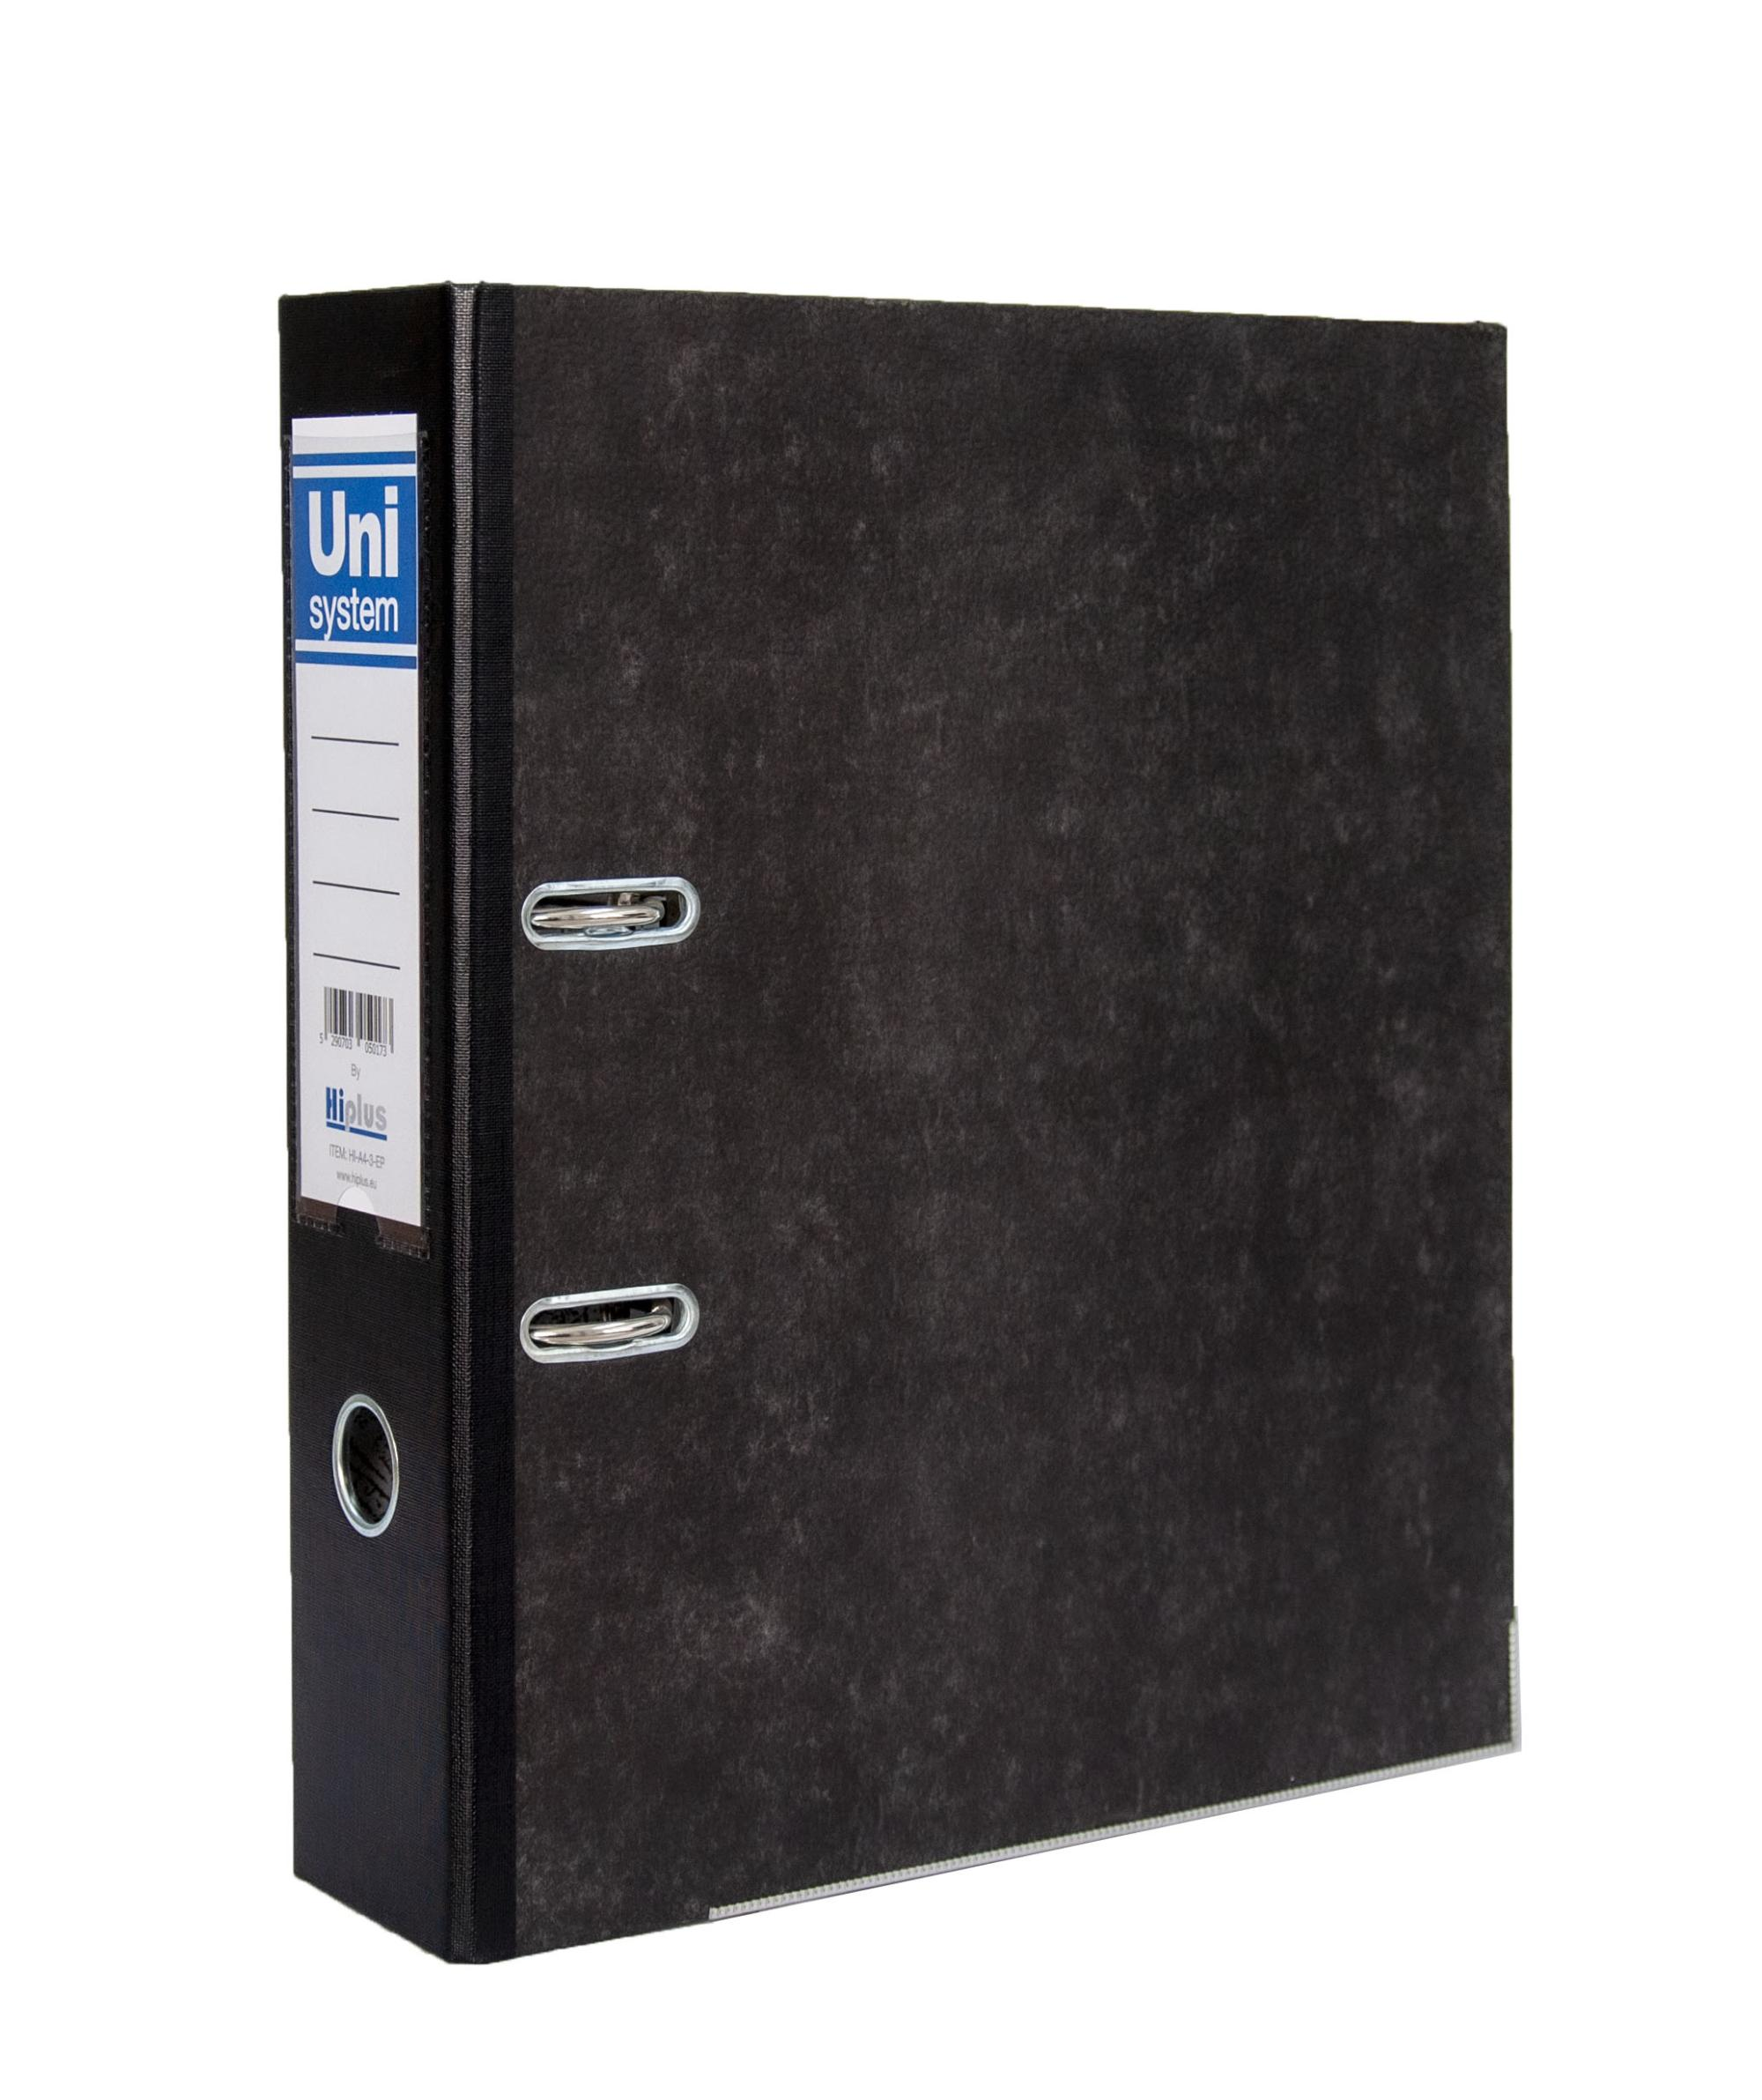 "HI-PLUS A4 LEVER ARCH FILE  - 3"" SPINE - EMBOSSED PAPER"